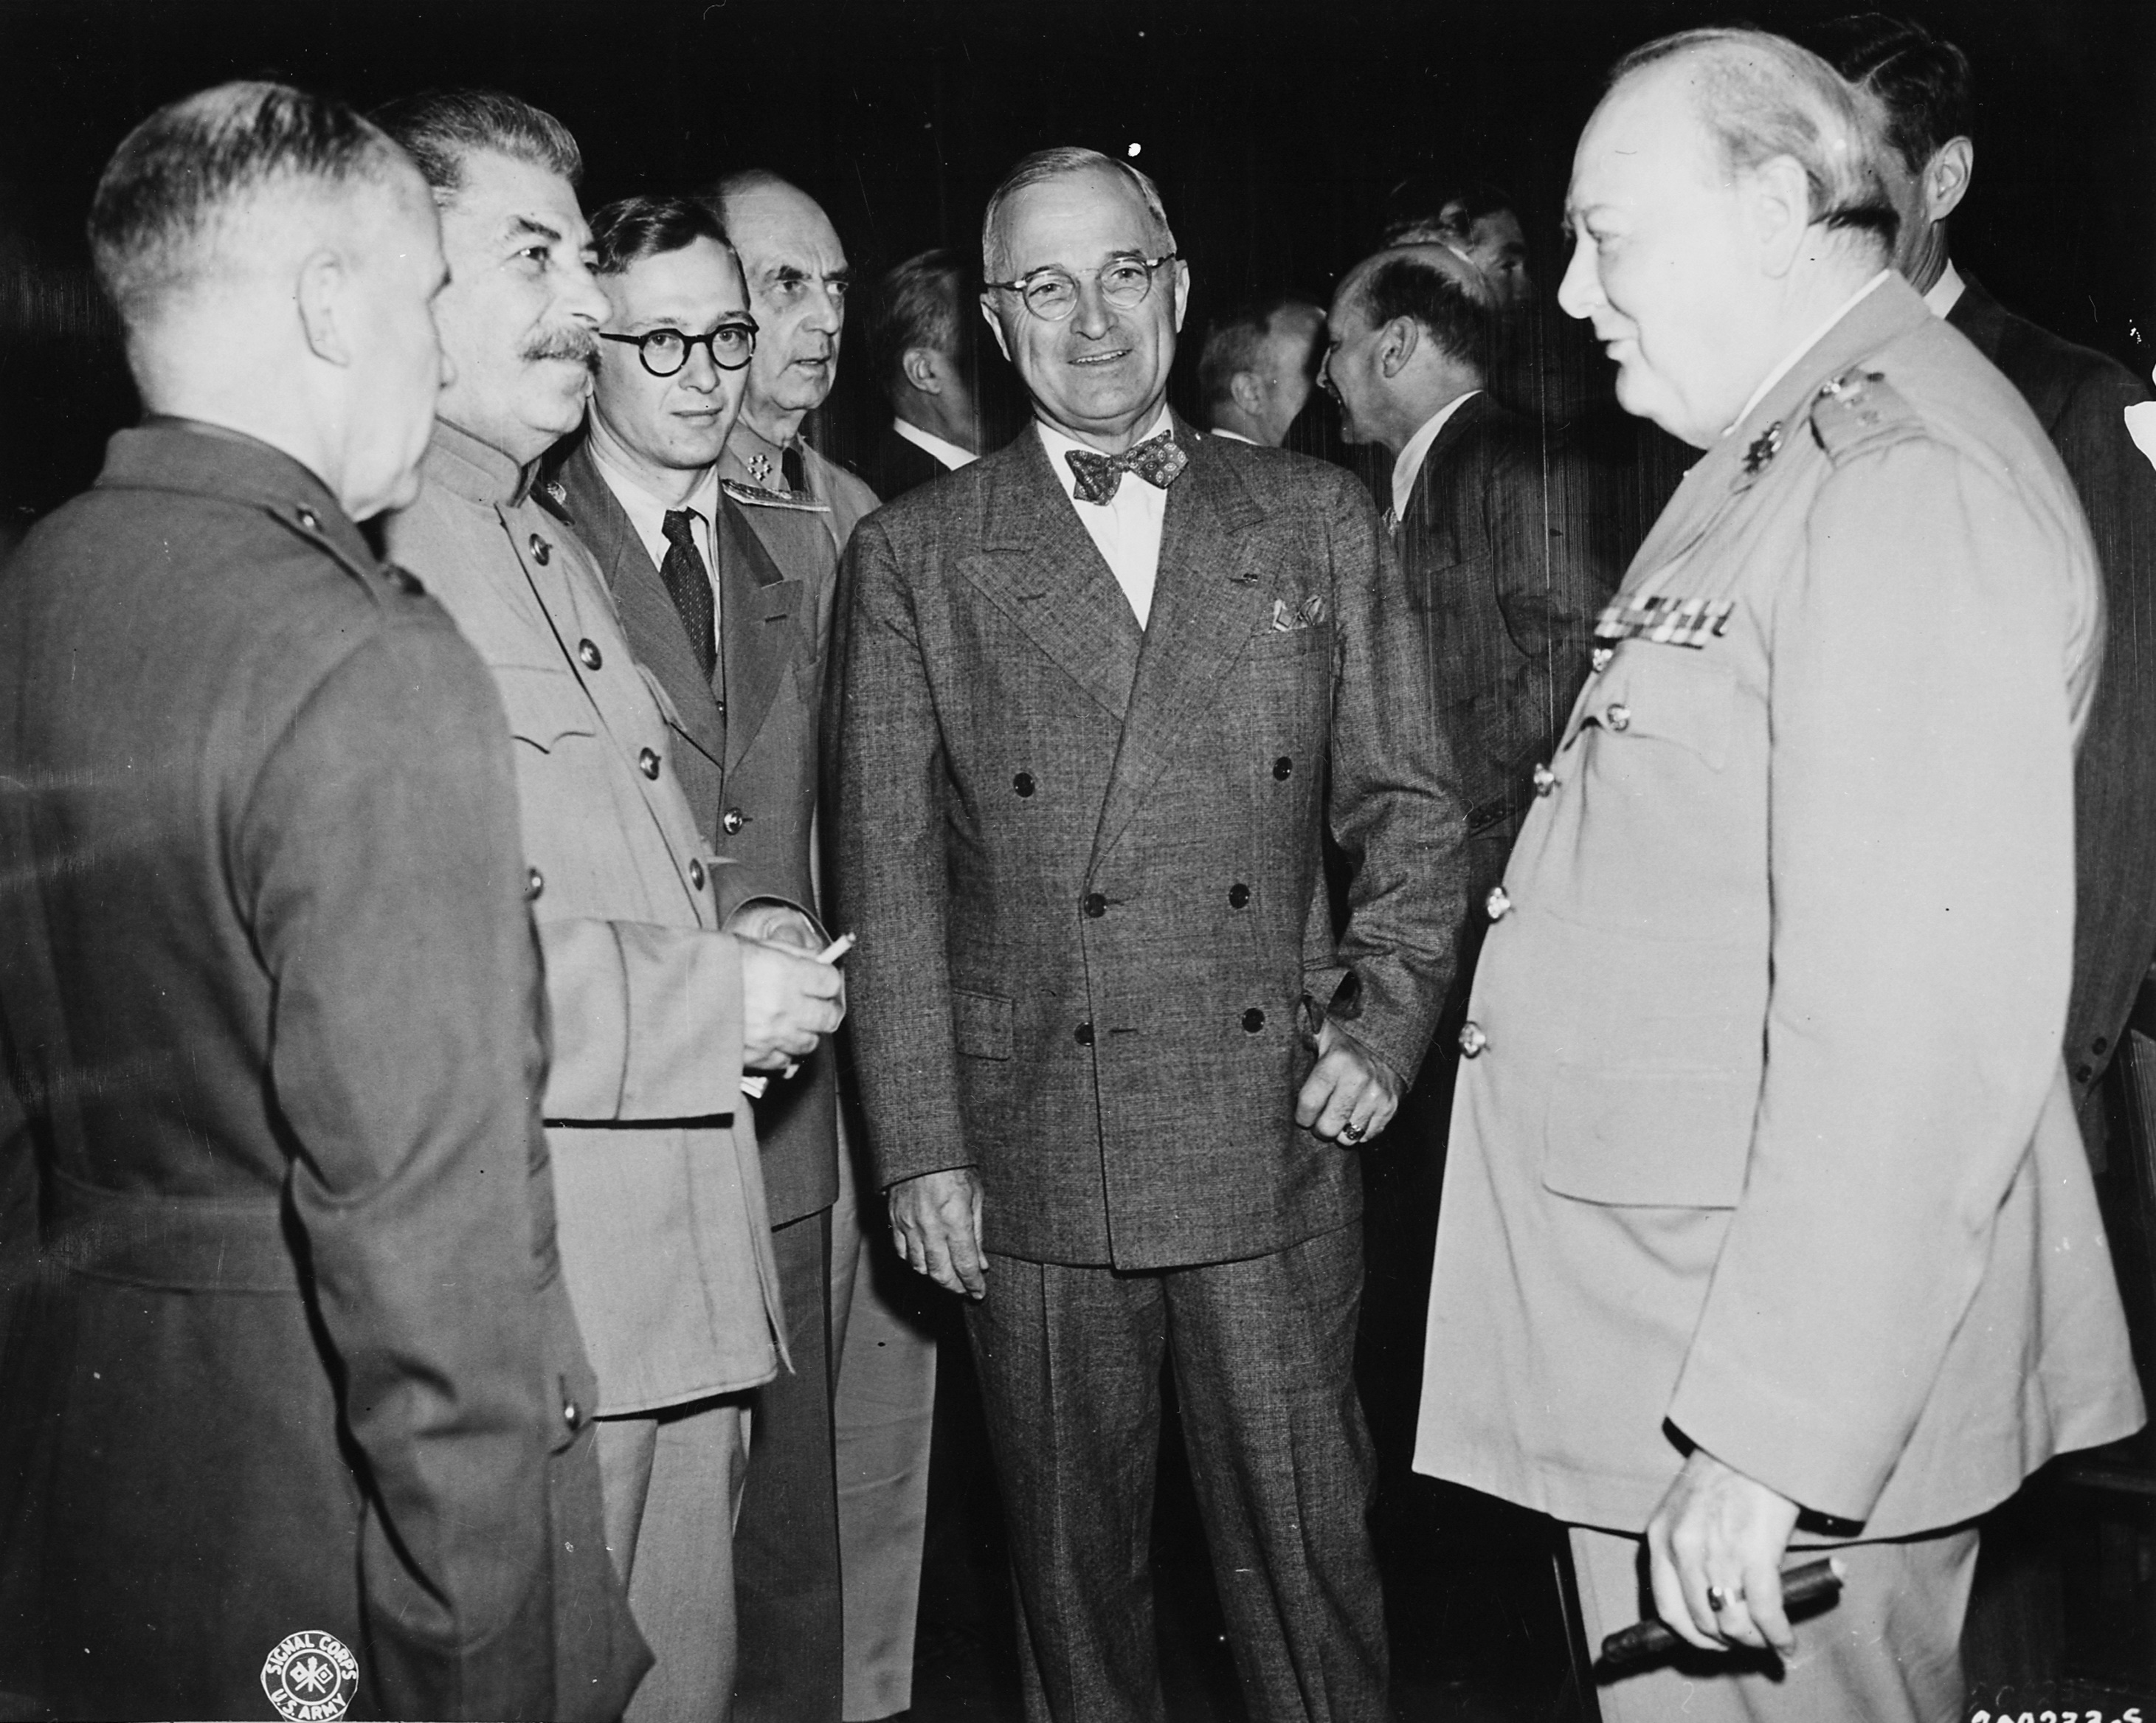 Joseph Stalin, Harry S. Truman and Winston Churchill taking a break at the Potsdam Conference held in Berlin from July 17 to August 2, 1945. Its result is the Potsdam Agreement, which sets out the fundamental questions of international law for the construction of a peaceful, democratic German state and the policy of the victors over Germany. Photo from the German Federal Archives, Allgemeiner Deutscher Nachrichtendienst - Zentralbild (Bild 183)